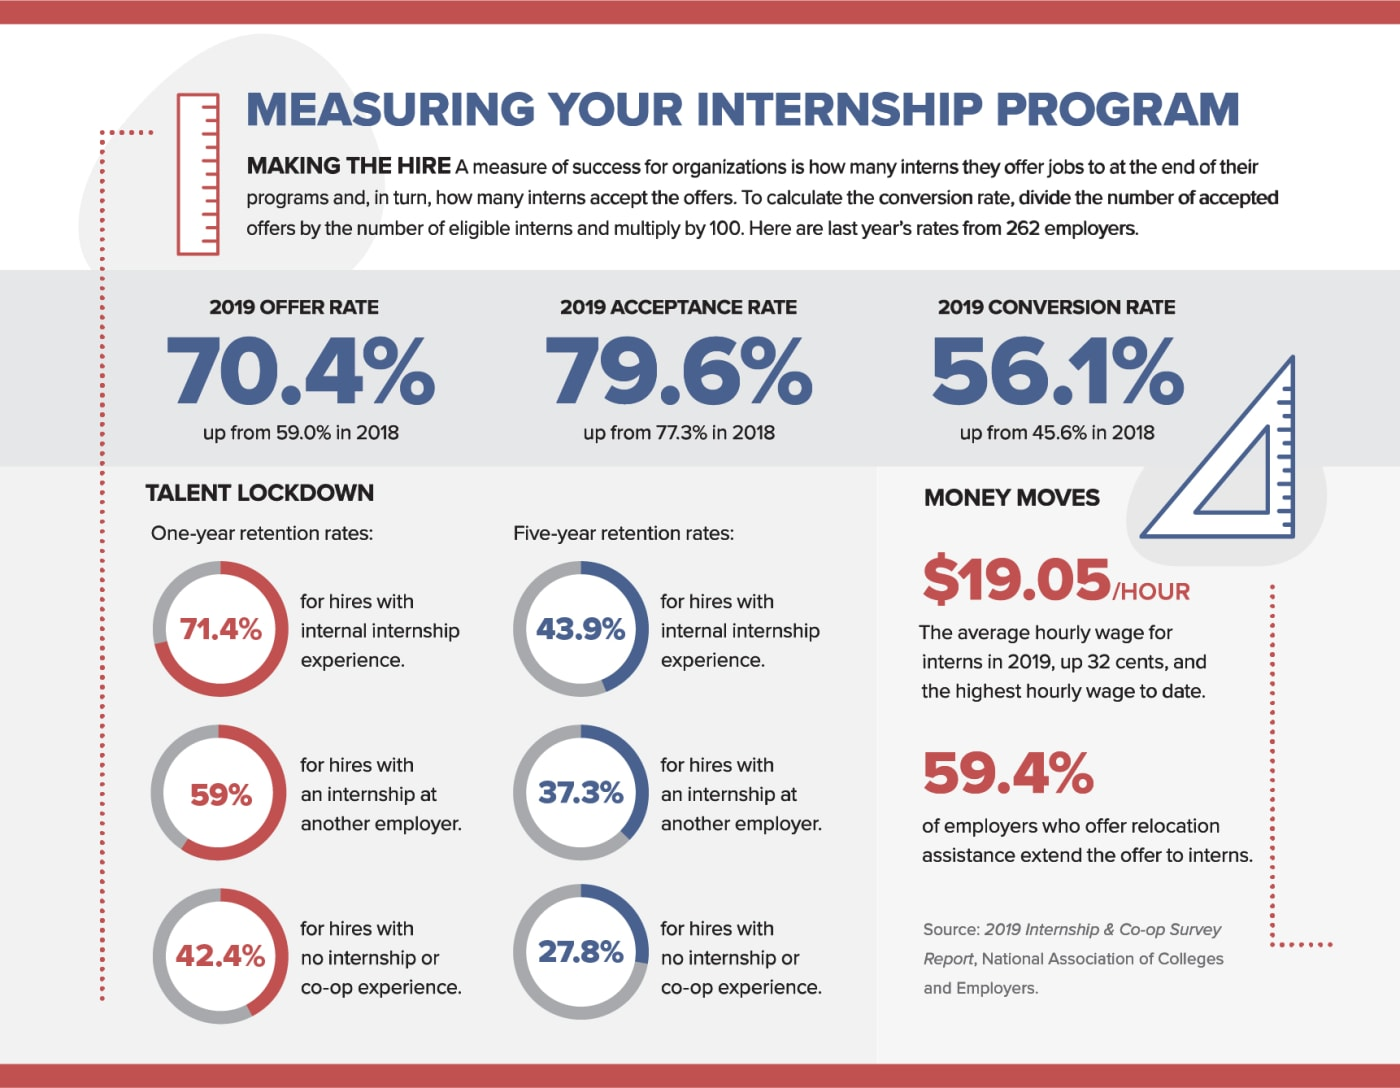 Measuring Your Internship Program